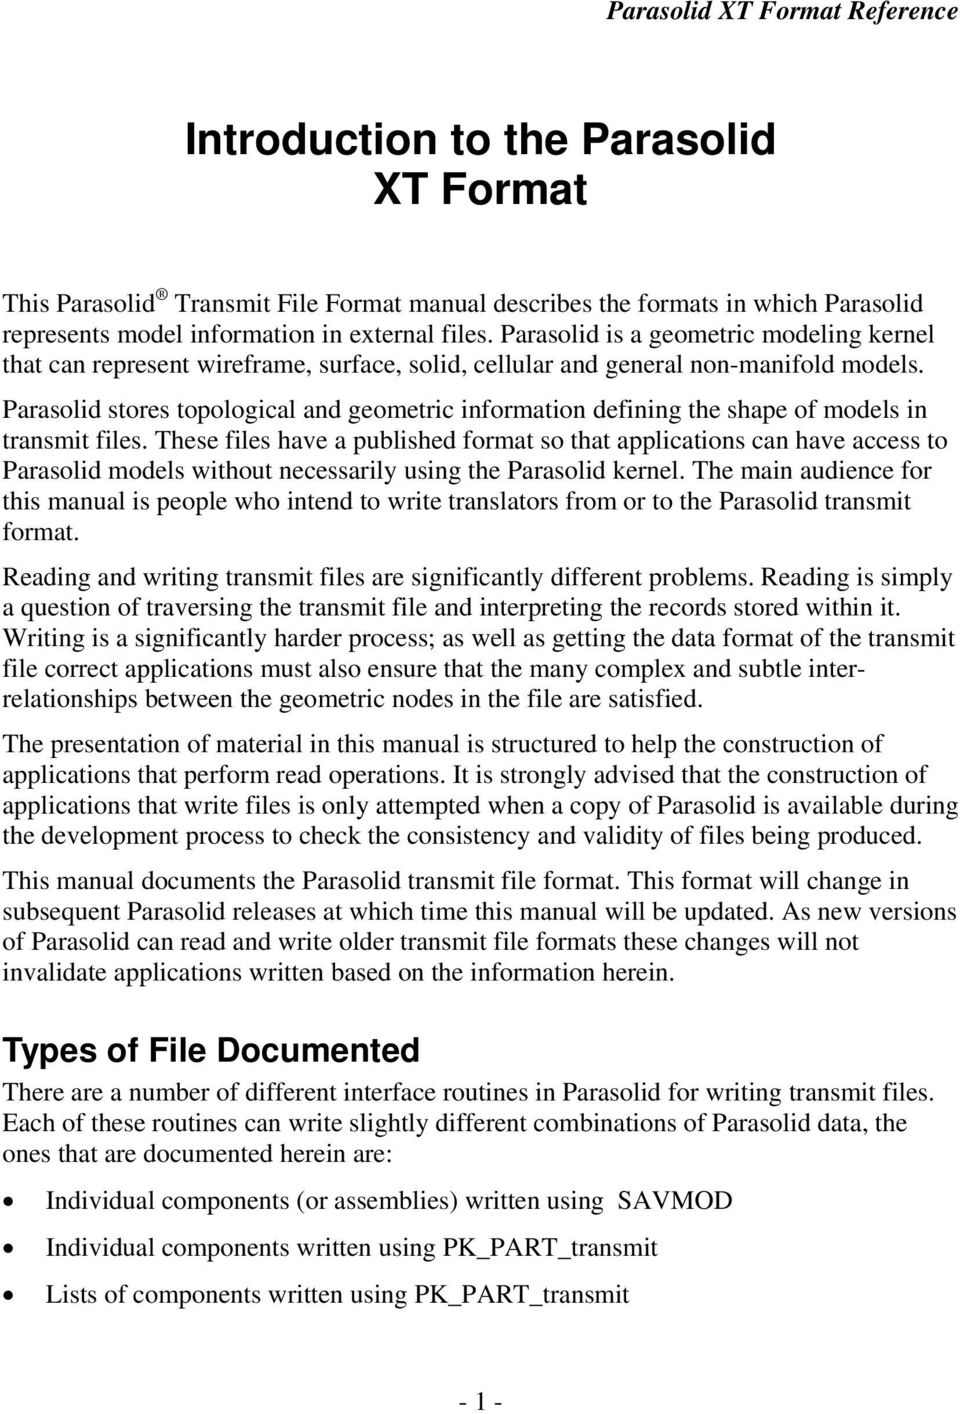 Parasolid XT Format Reference April PDF